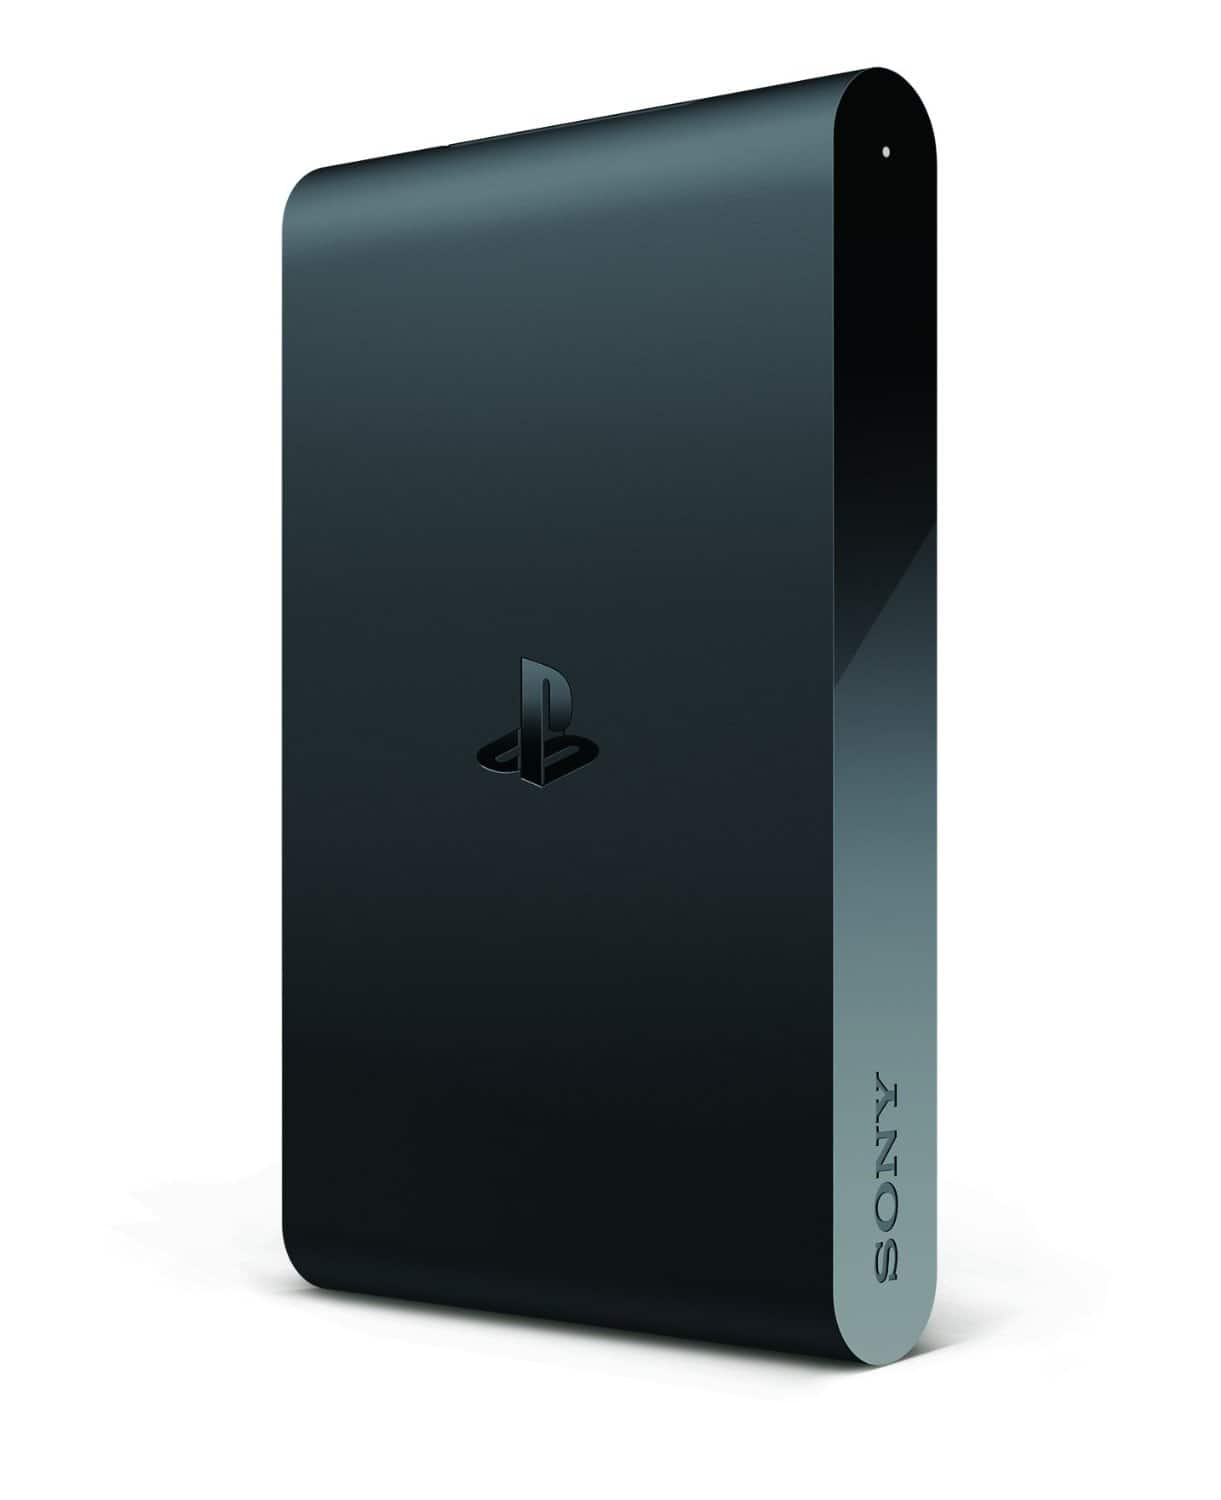 PlayStation TV for $19.99 at Best Buy